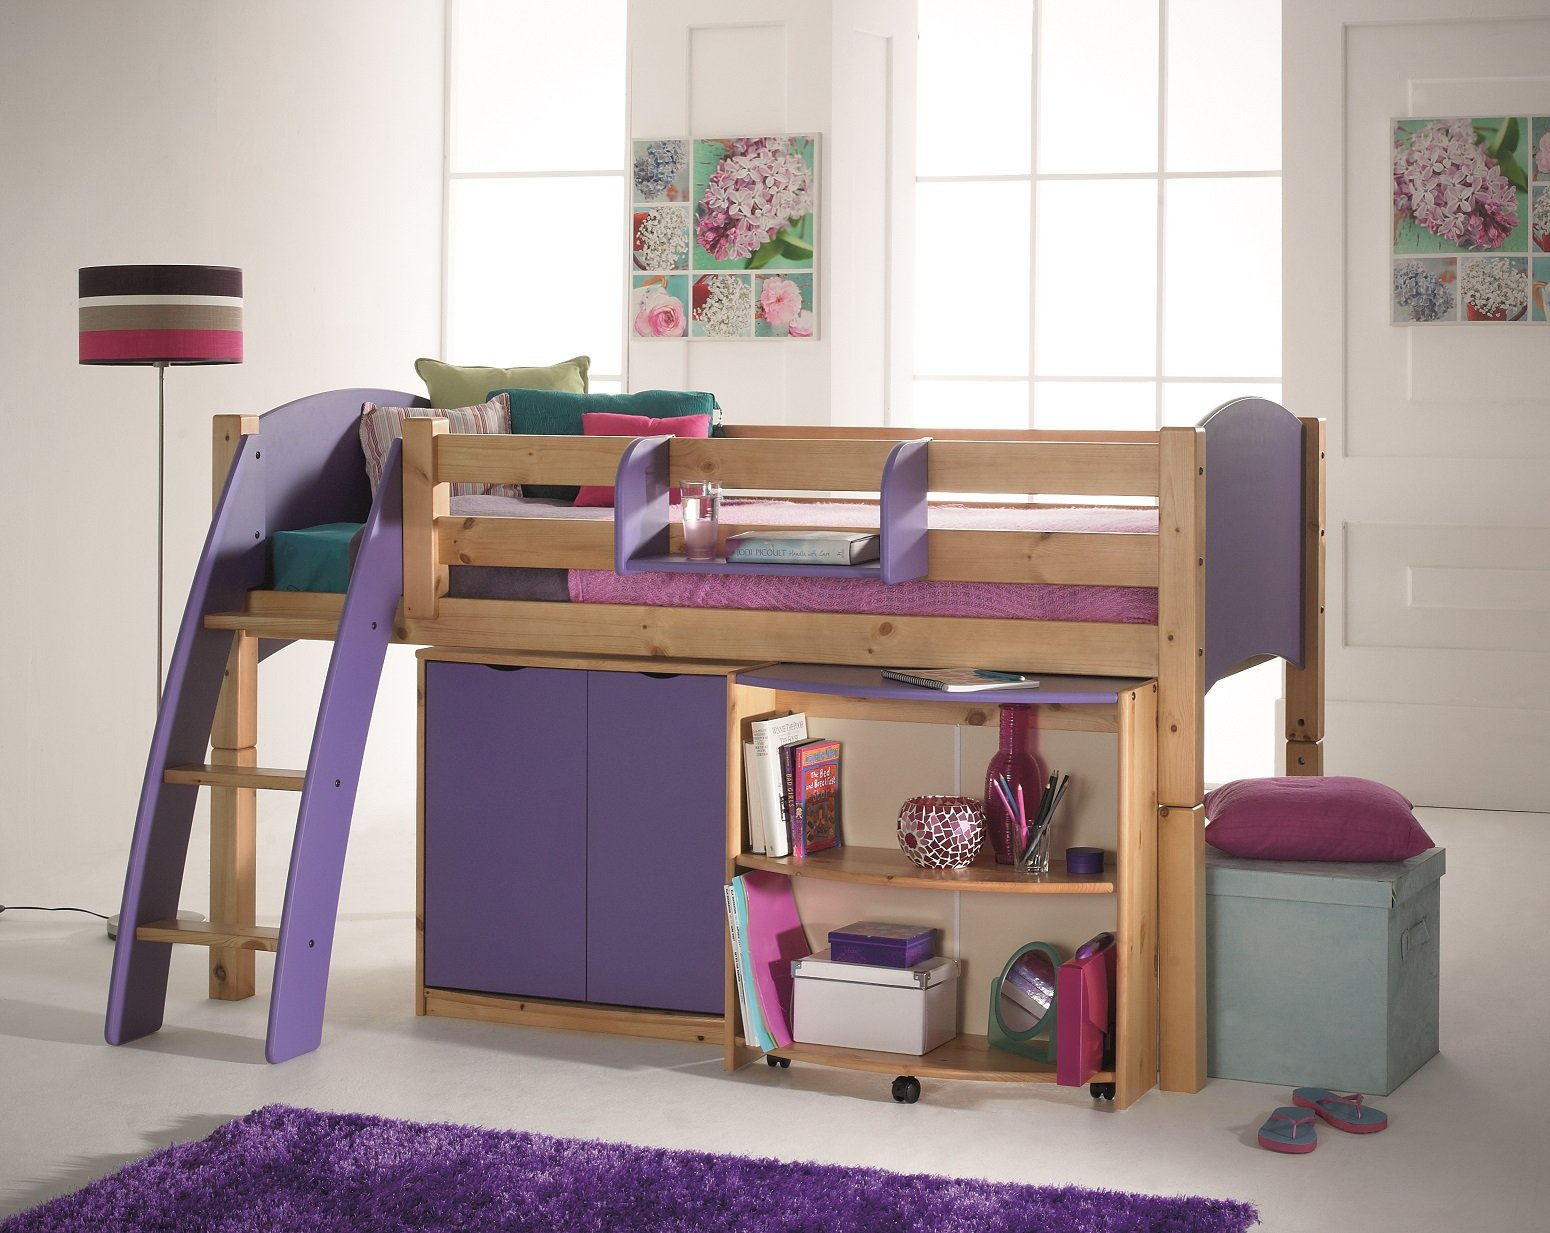 Scallywag Convertible Childs Midsleeper Cabin Bed With Pull Out - Scallywags bedroom furniture